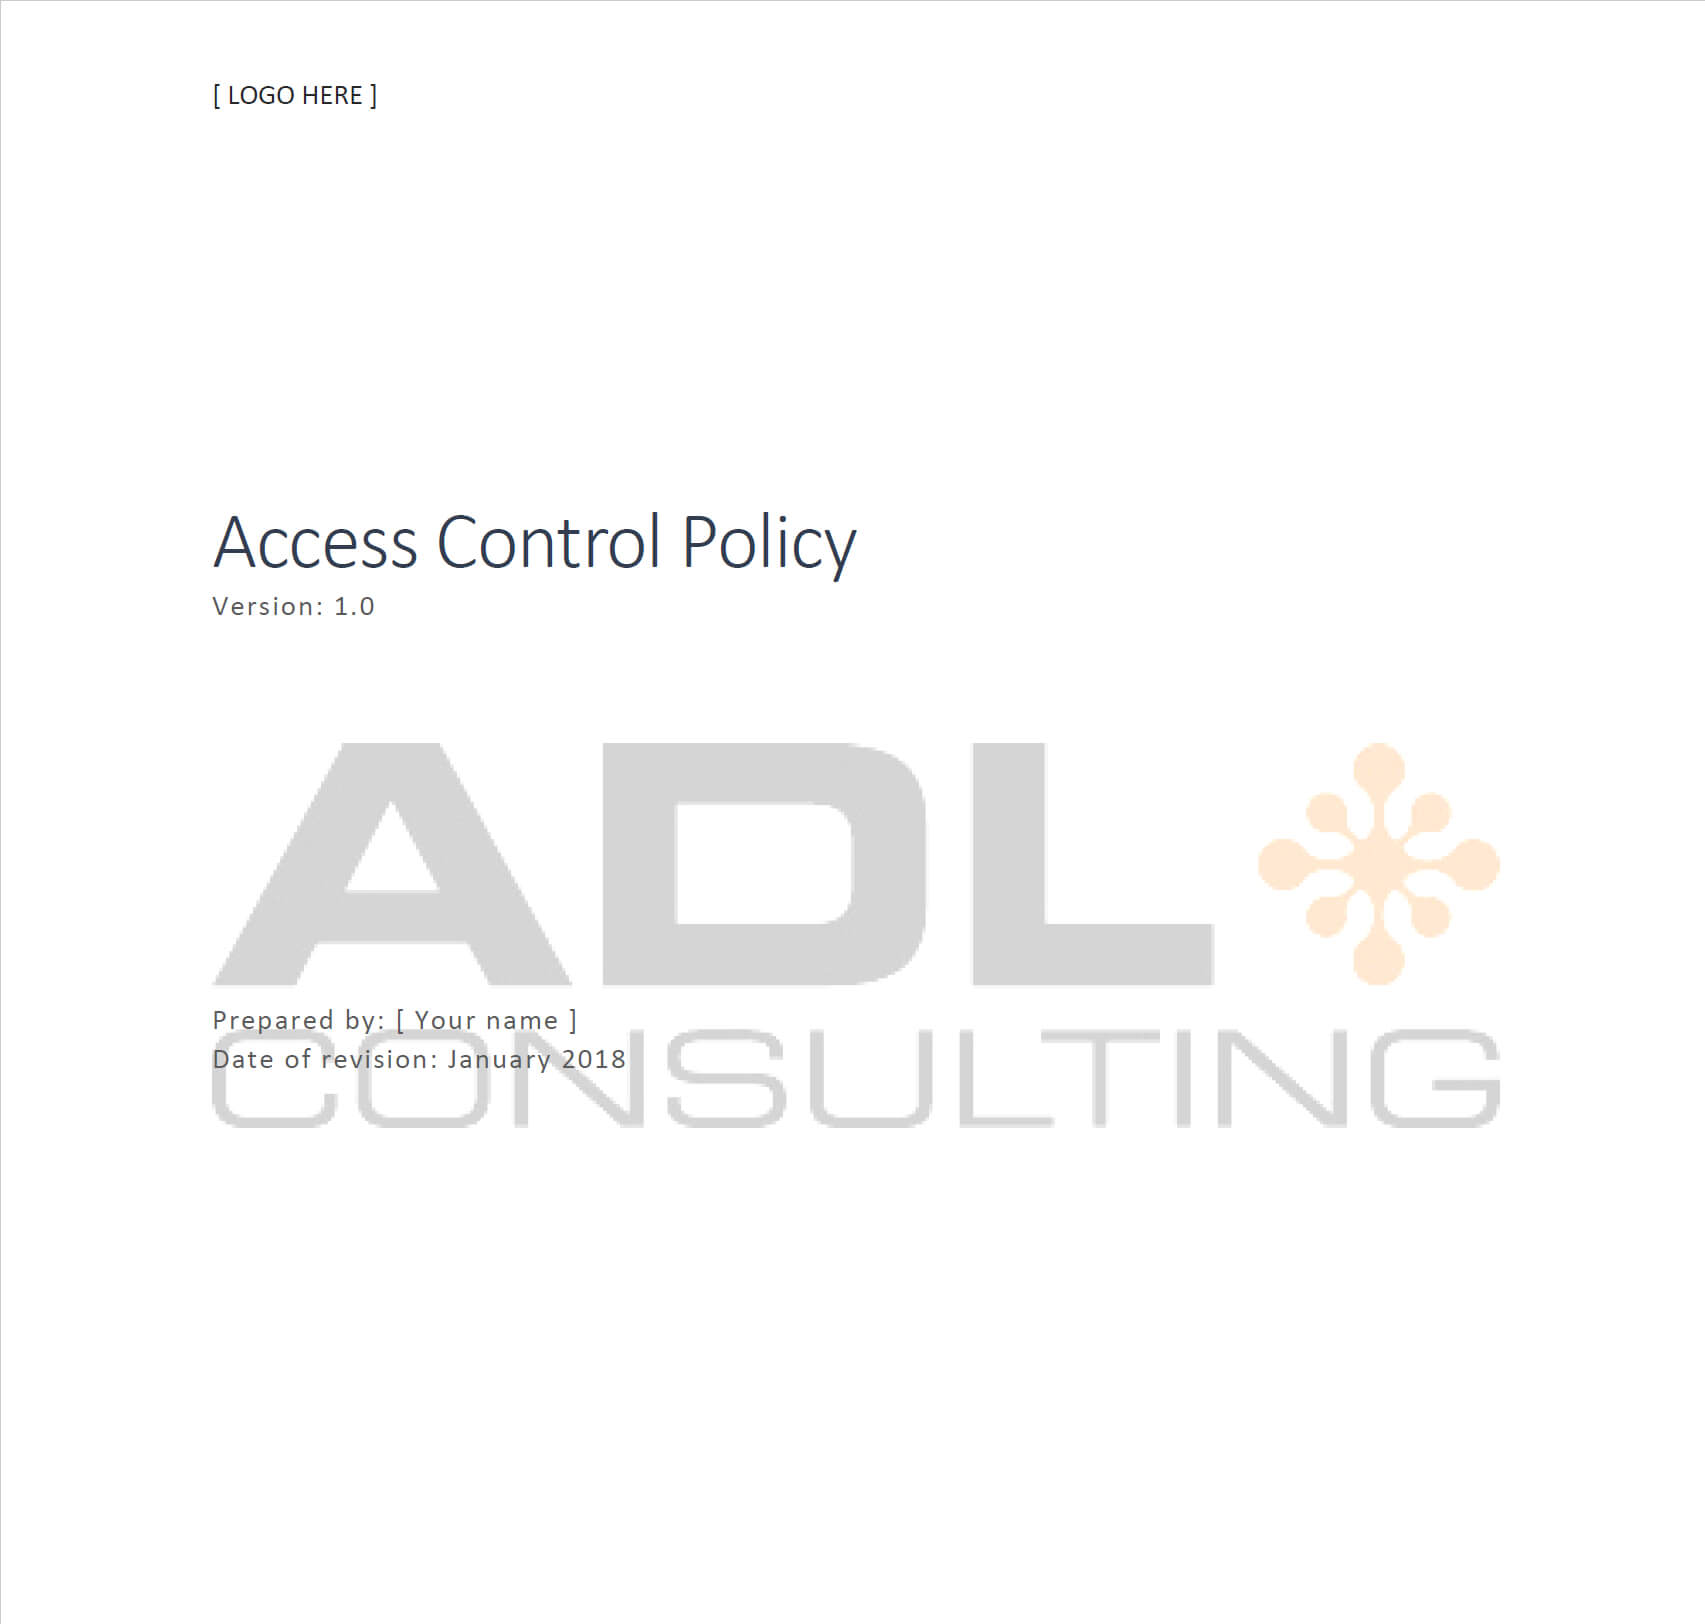 Access Control Policy Template | Adl Consulting Throughout Access Control Policy Template